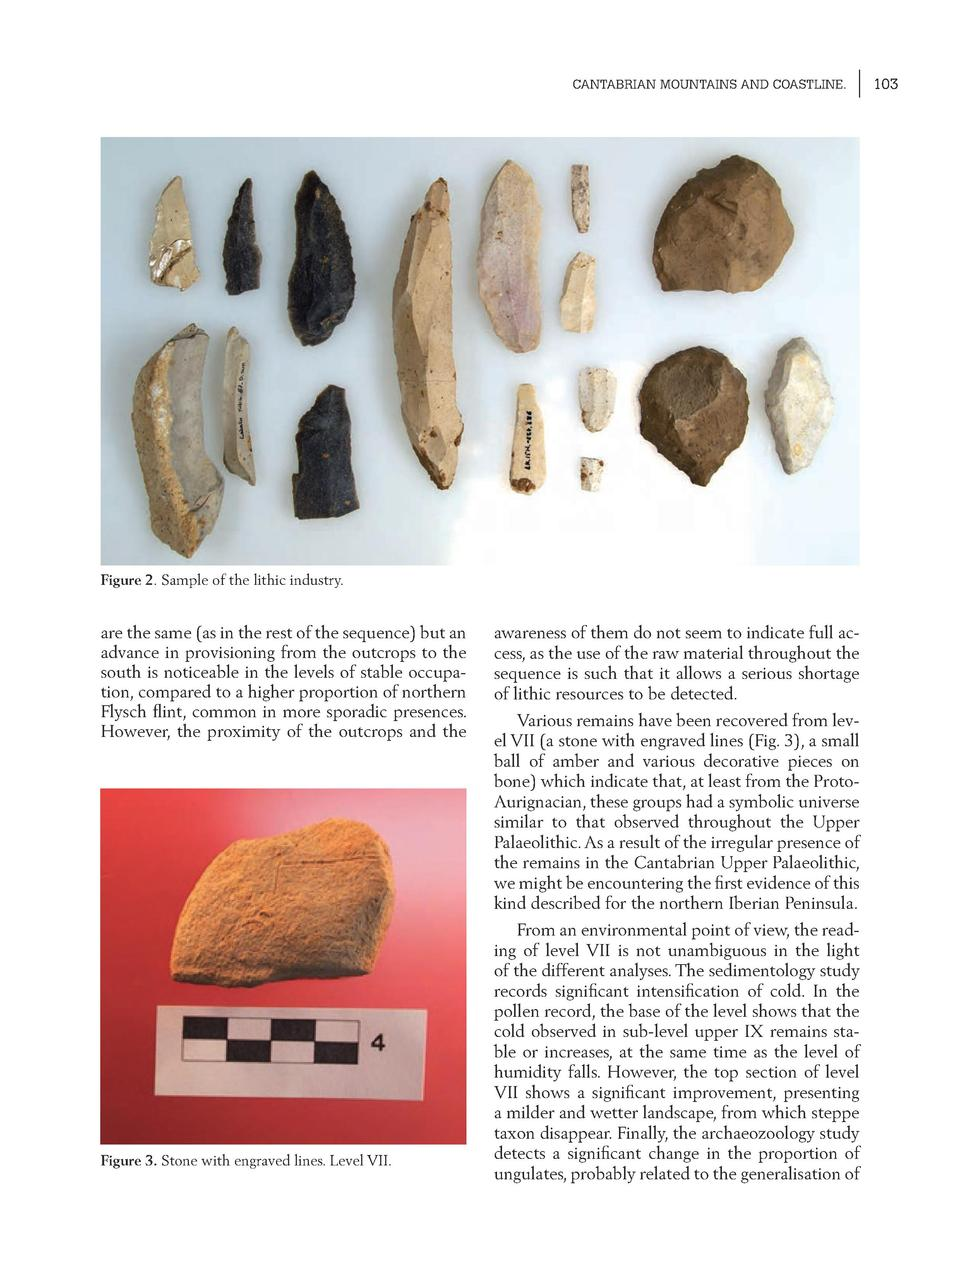 CANTABRIAN MOUNTAINS AND COASTLINE.  Figure 2. Sample of the lithic industry.  are the same  as in the rest of the sequenc...